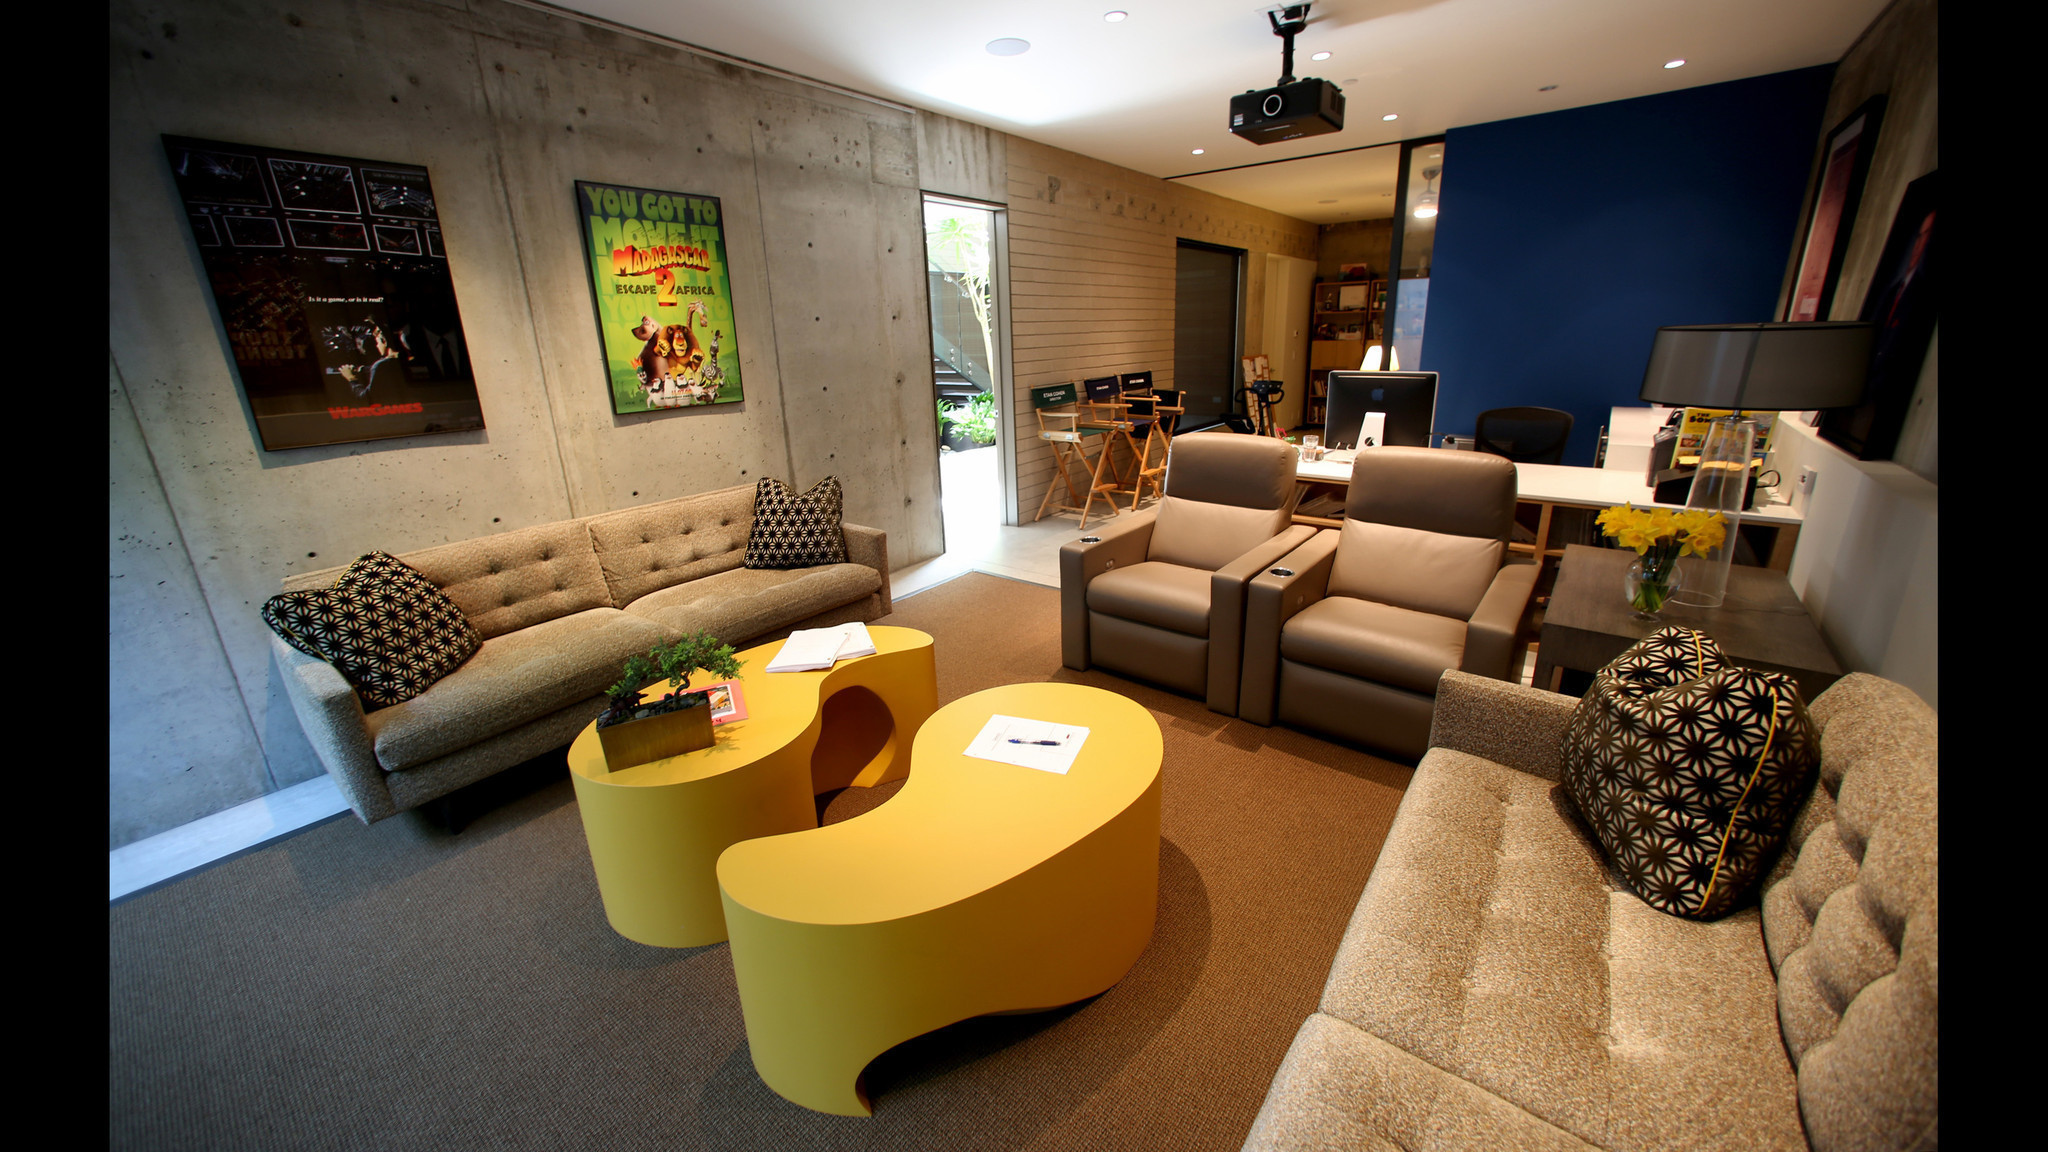 Basements: The Underground Trend In Adding Space To Homes